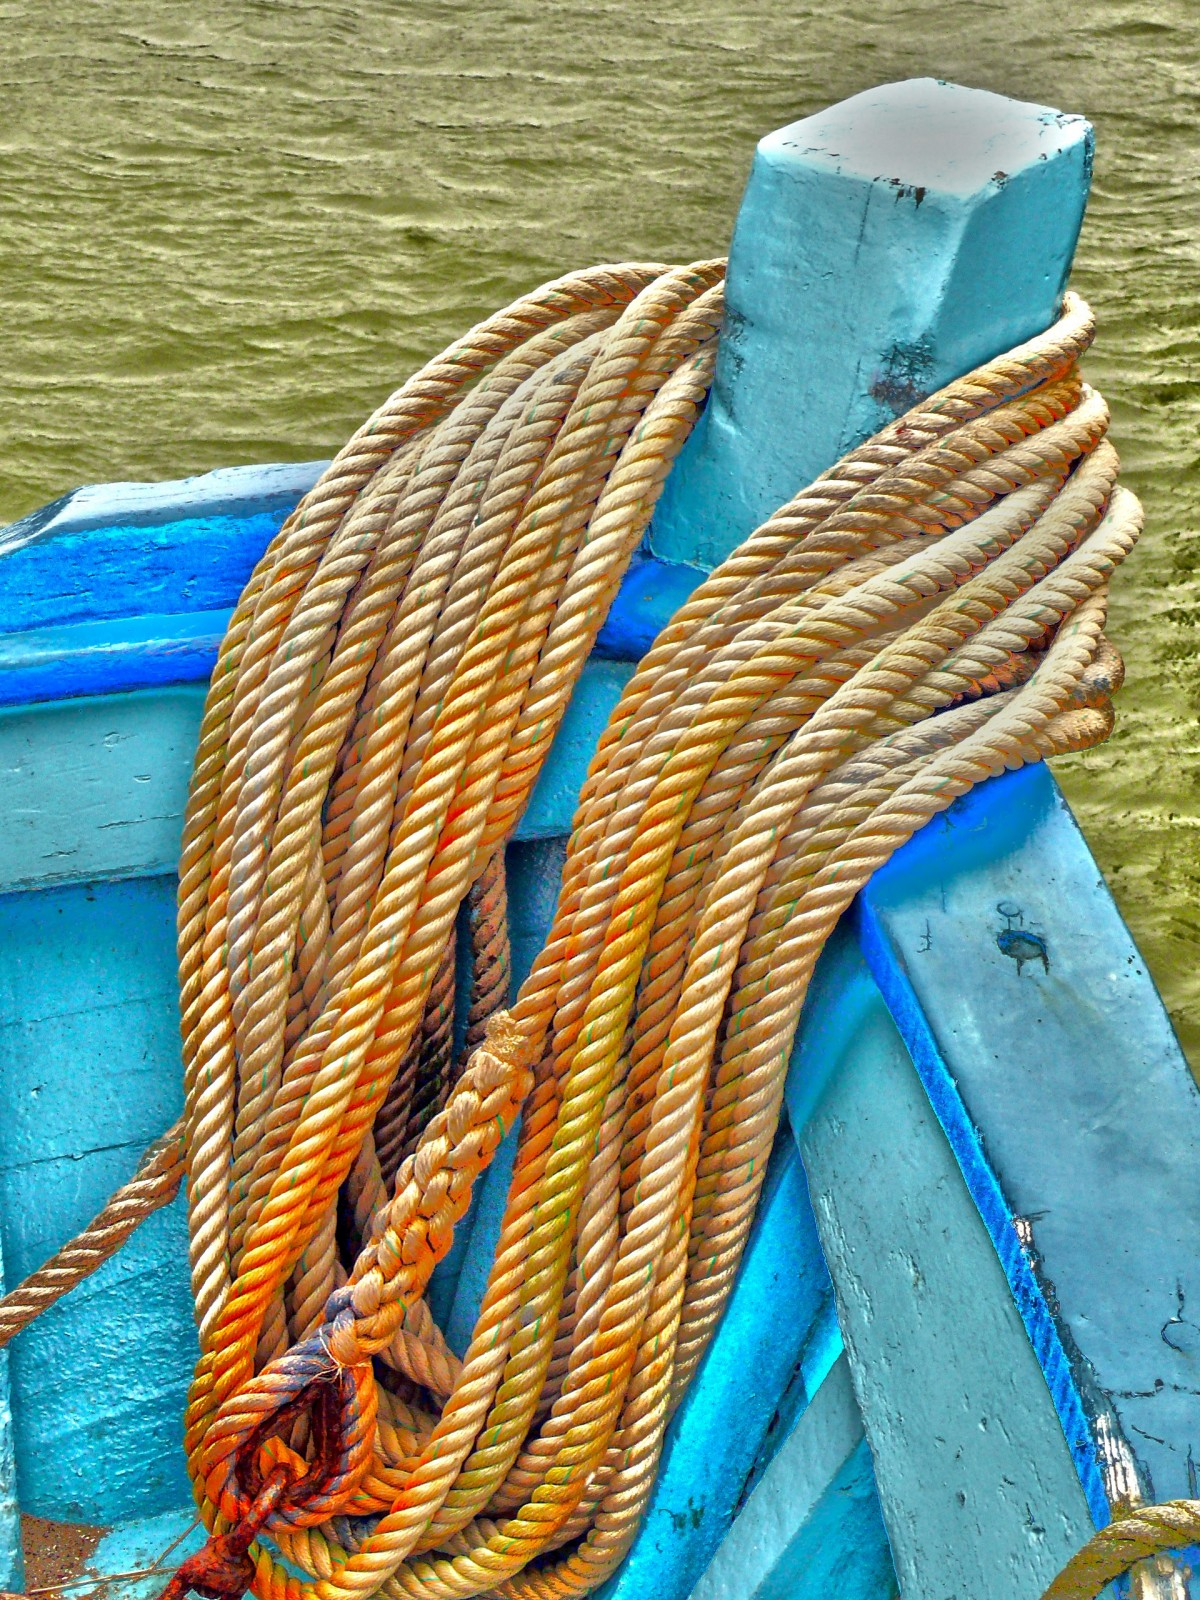 Cordage Marin Décoration Free Images Sea Rope France Color Blue Float